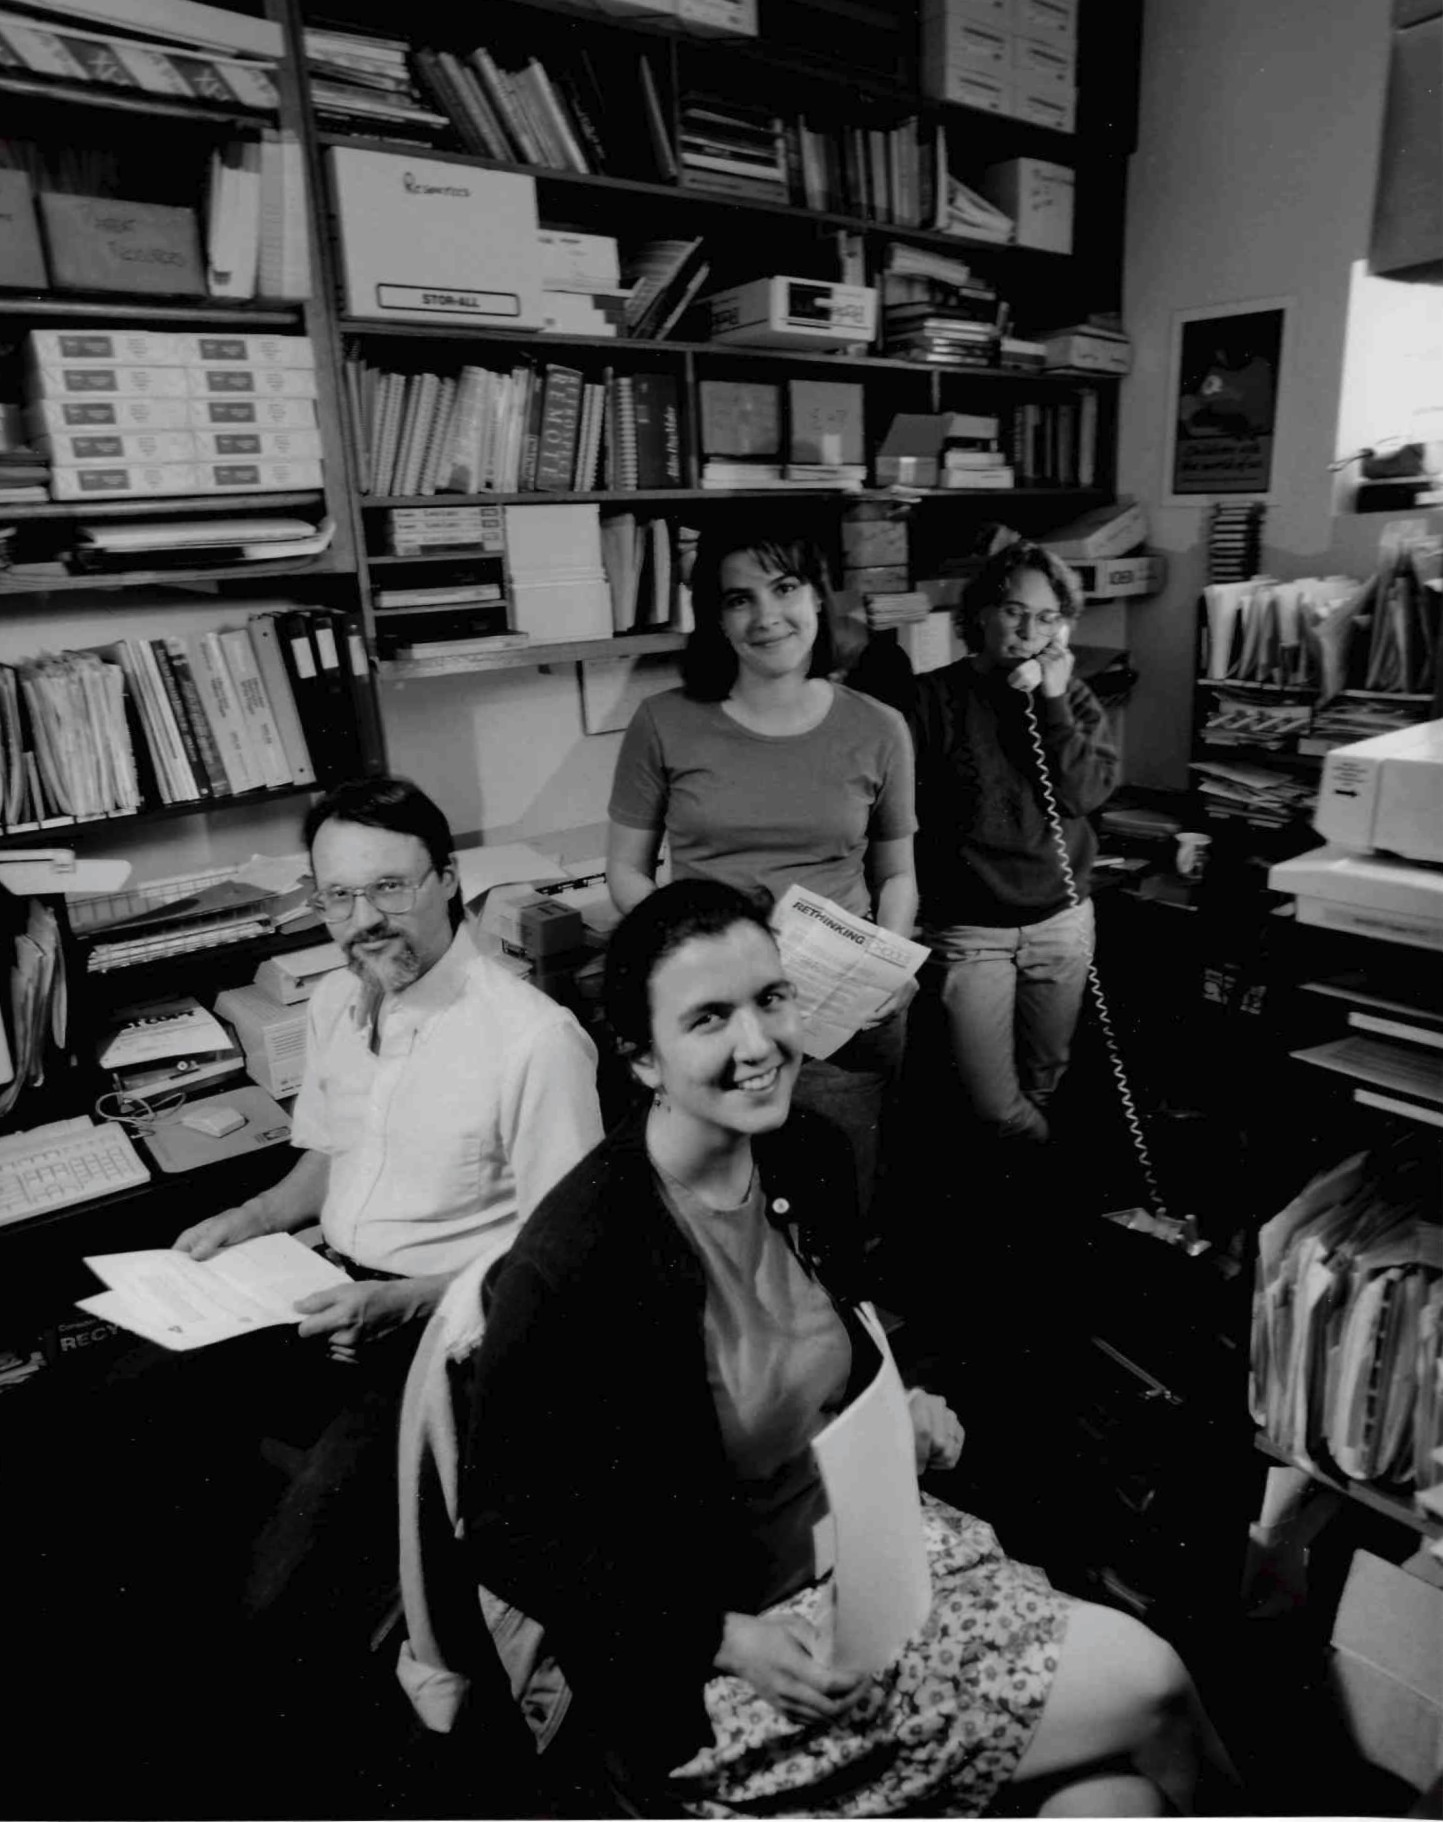 In its early years, Rethinking Schools was headquartered in a small office of the Milwaukee Peace Action Center. Pictured from the foreground to background are Jennifer Morales, Mike Trokan, Sharon Matthias, and Barbara Miner.